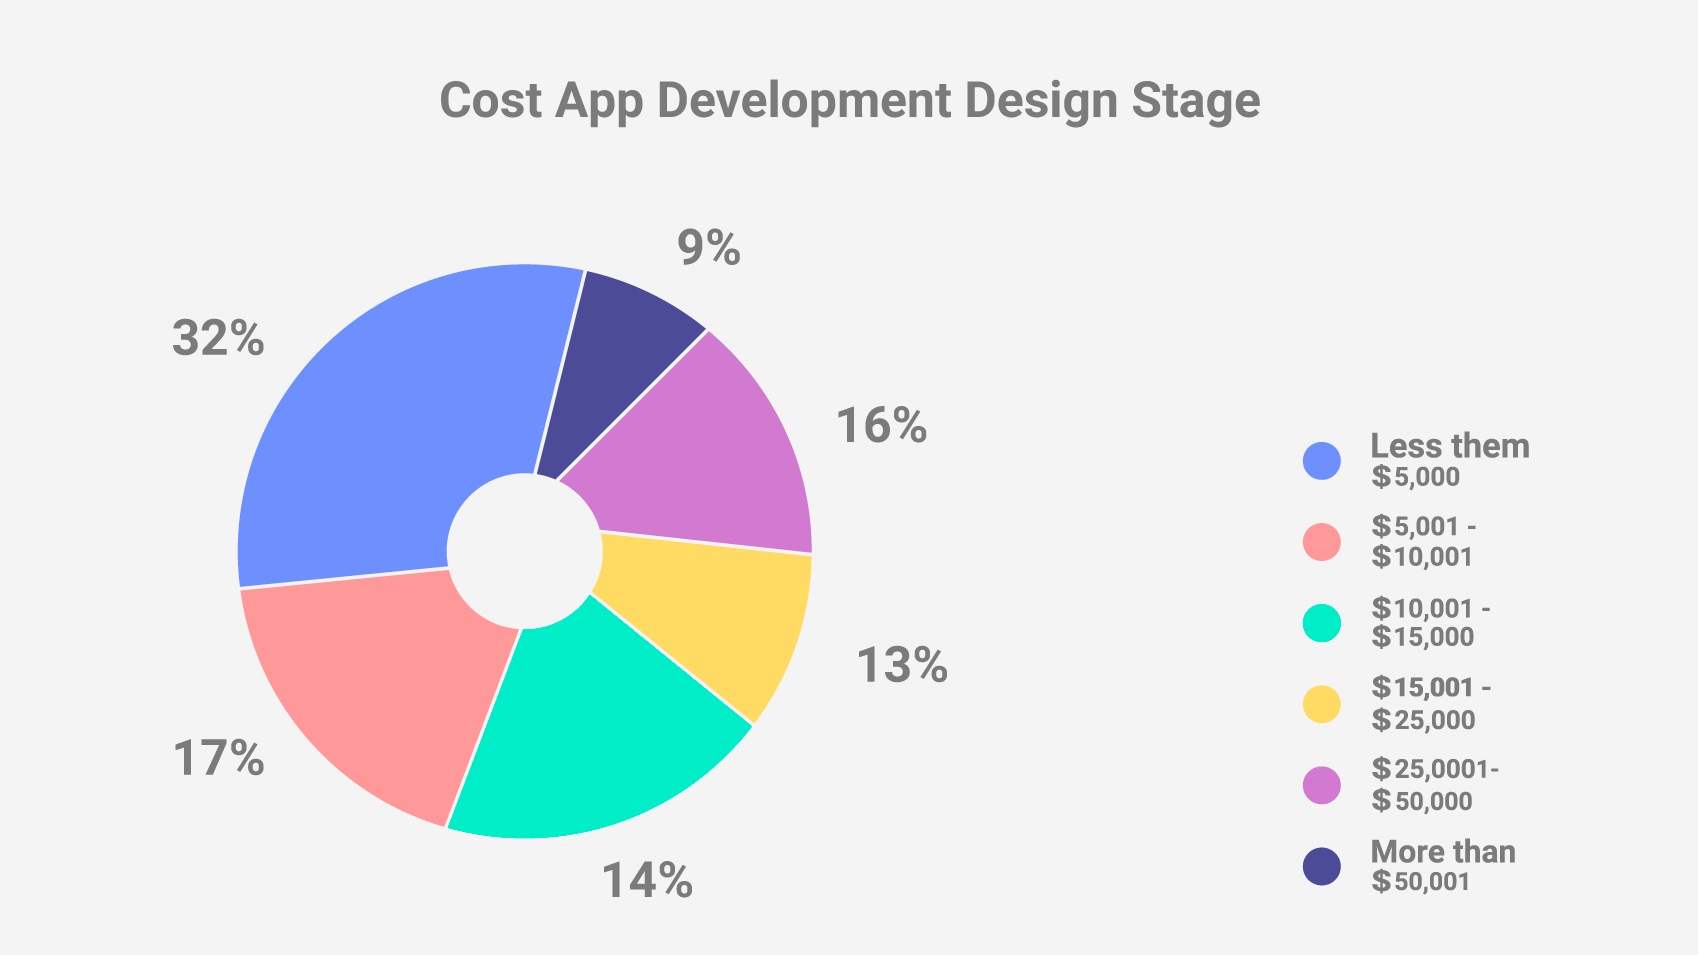 Cost to Design an App